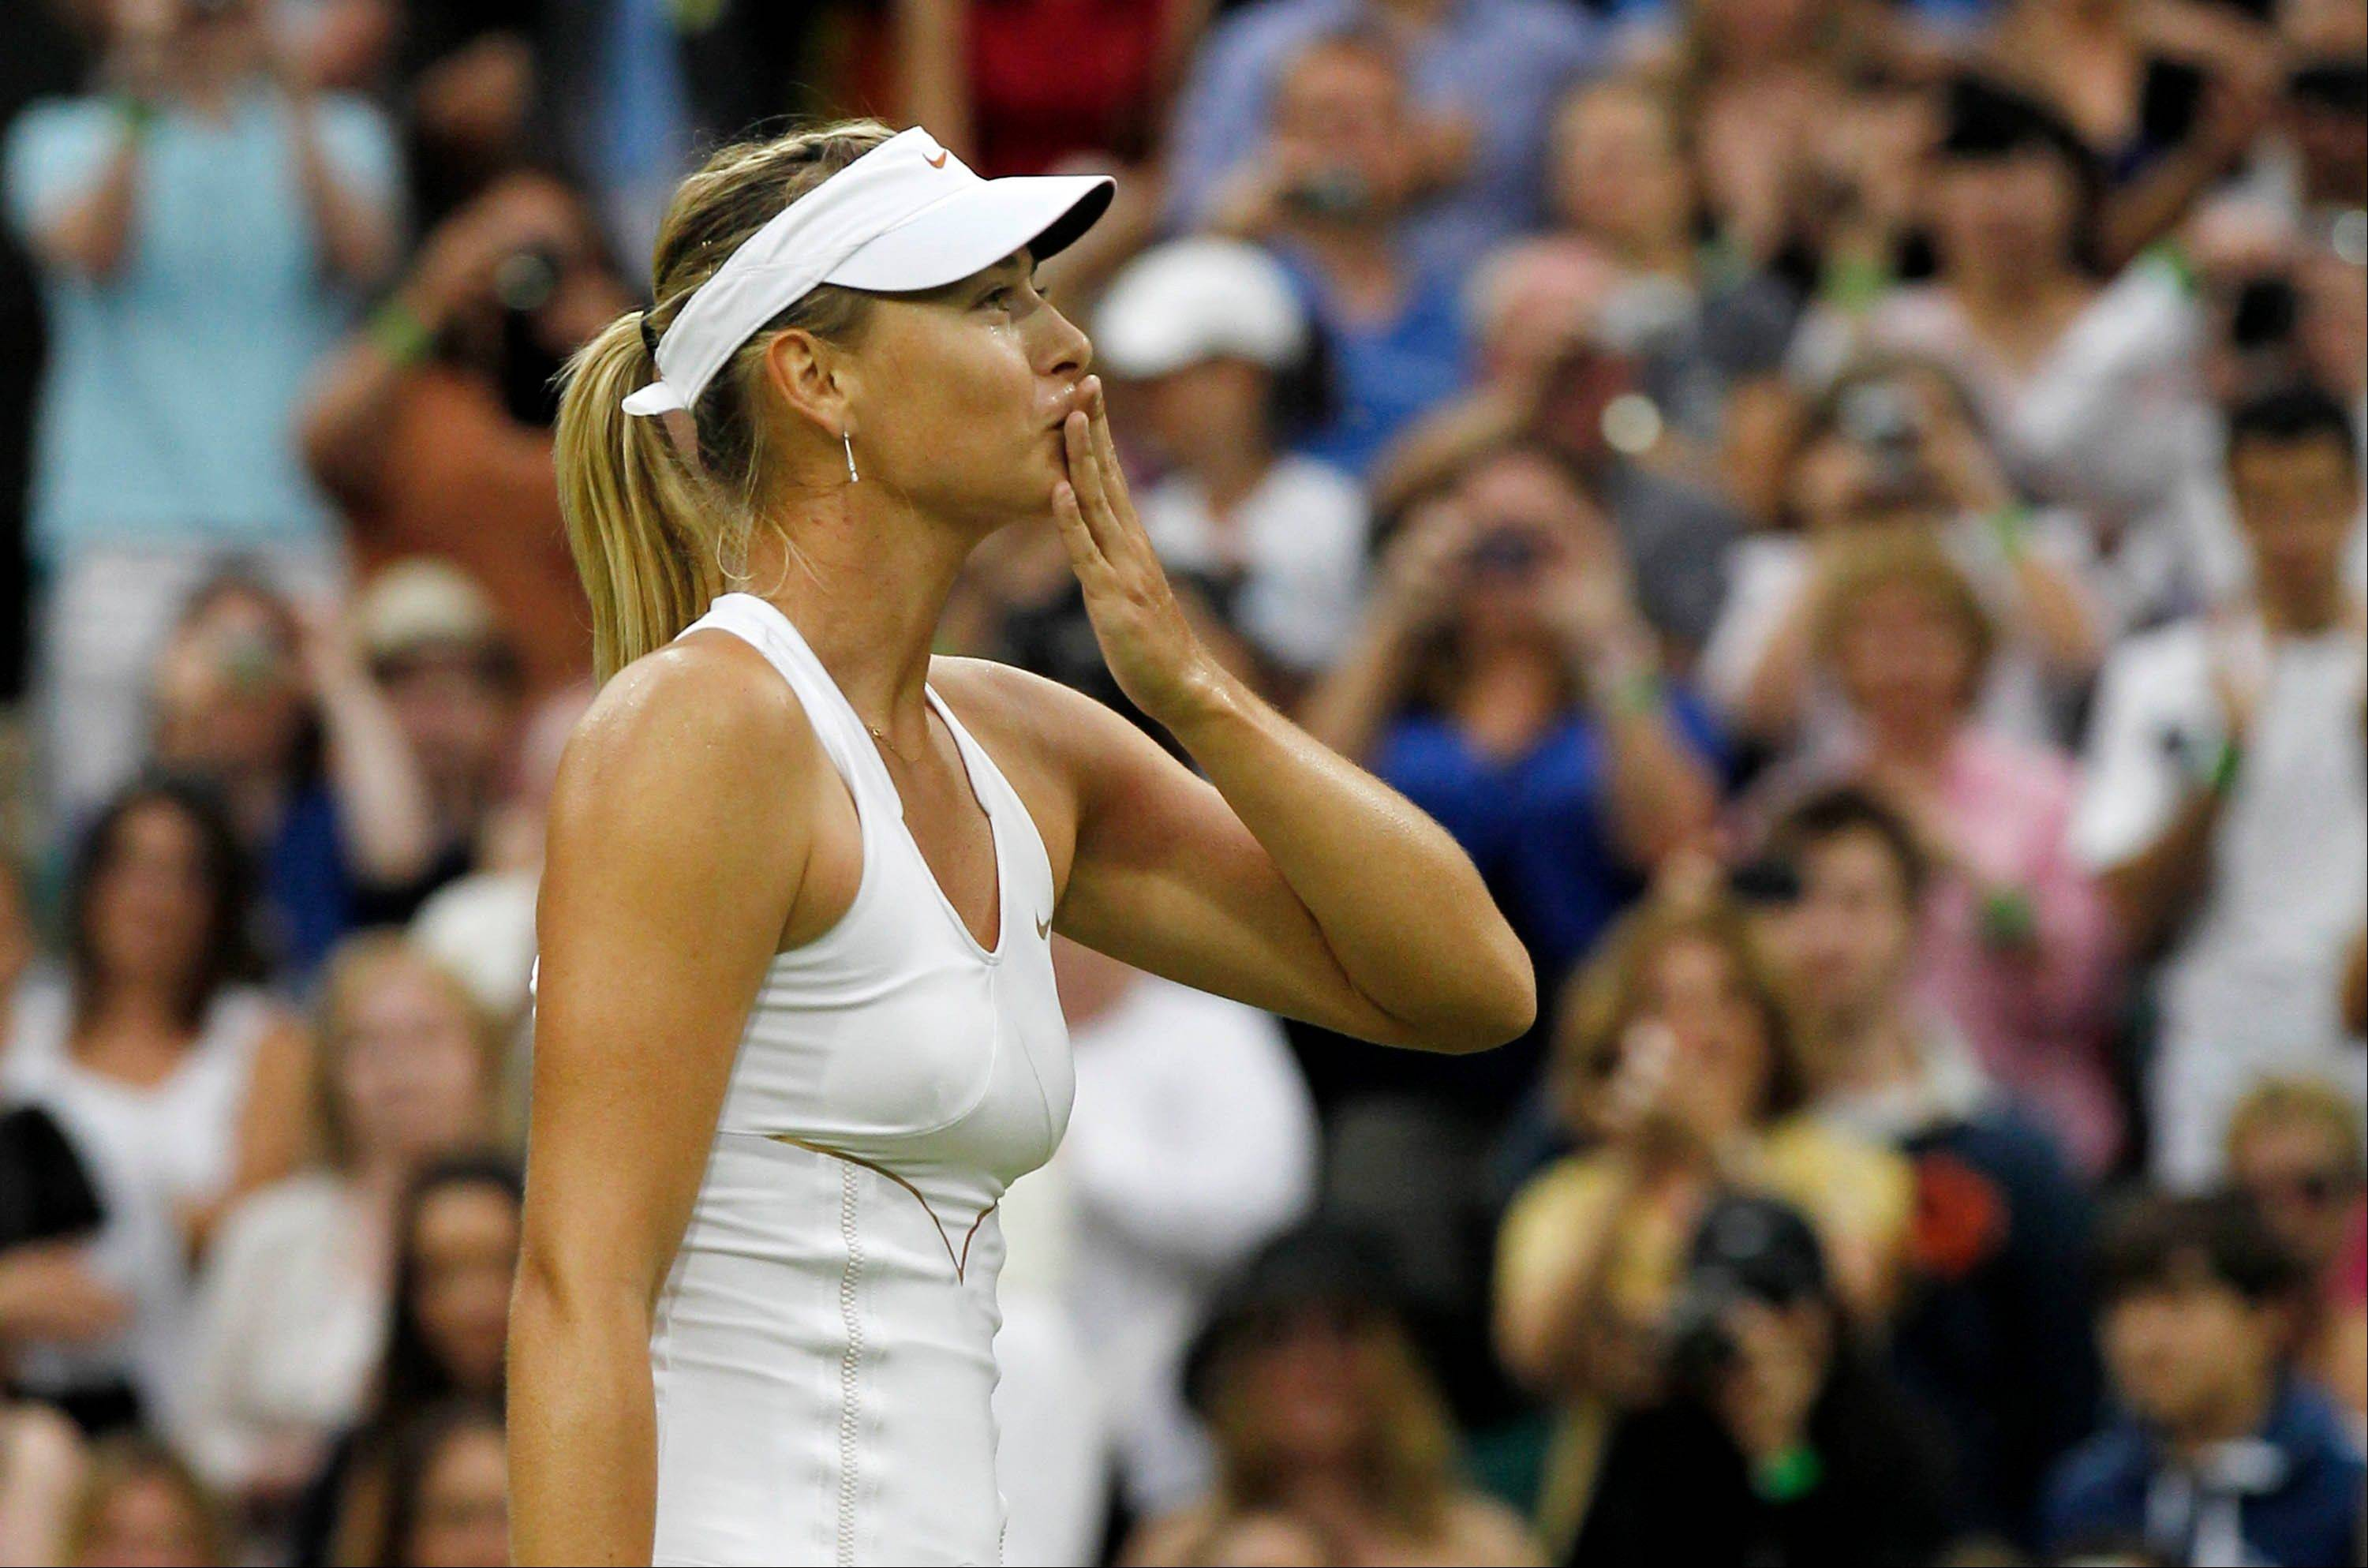 Russia's Maria Sharapova blows kisses to the crowd after defeating Slovakia's Dominika Cibulkova in their match Tuesday at the All England Lawn Tennis Championships at Wimbledon.